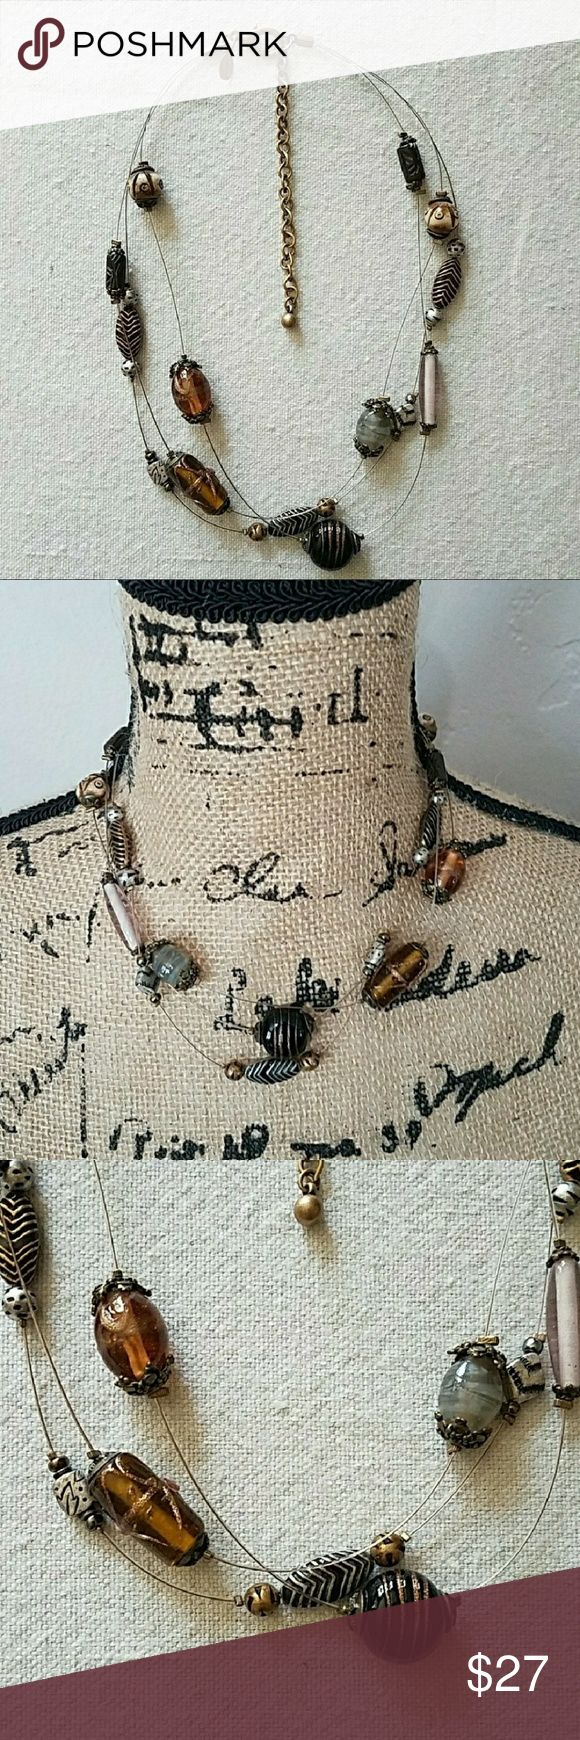 Chico's Multi Layered Necklace. Chico's Multi Layered Necklace. Gorgeous mix of glass beads and metal.Sure to jazz up any outfit. Wear everyday, office, party or night out. Feel free to ask any questions before purchase. Bundle & Save. Offers welcome. Chico's Jewelry